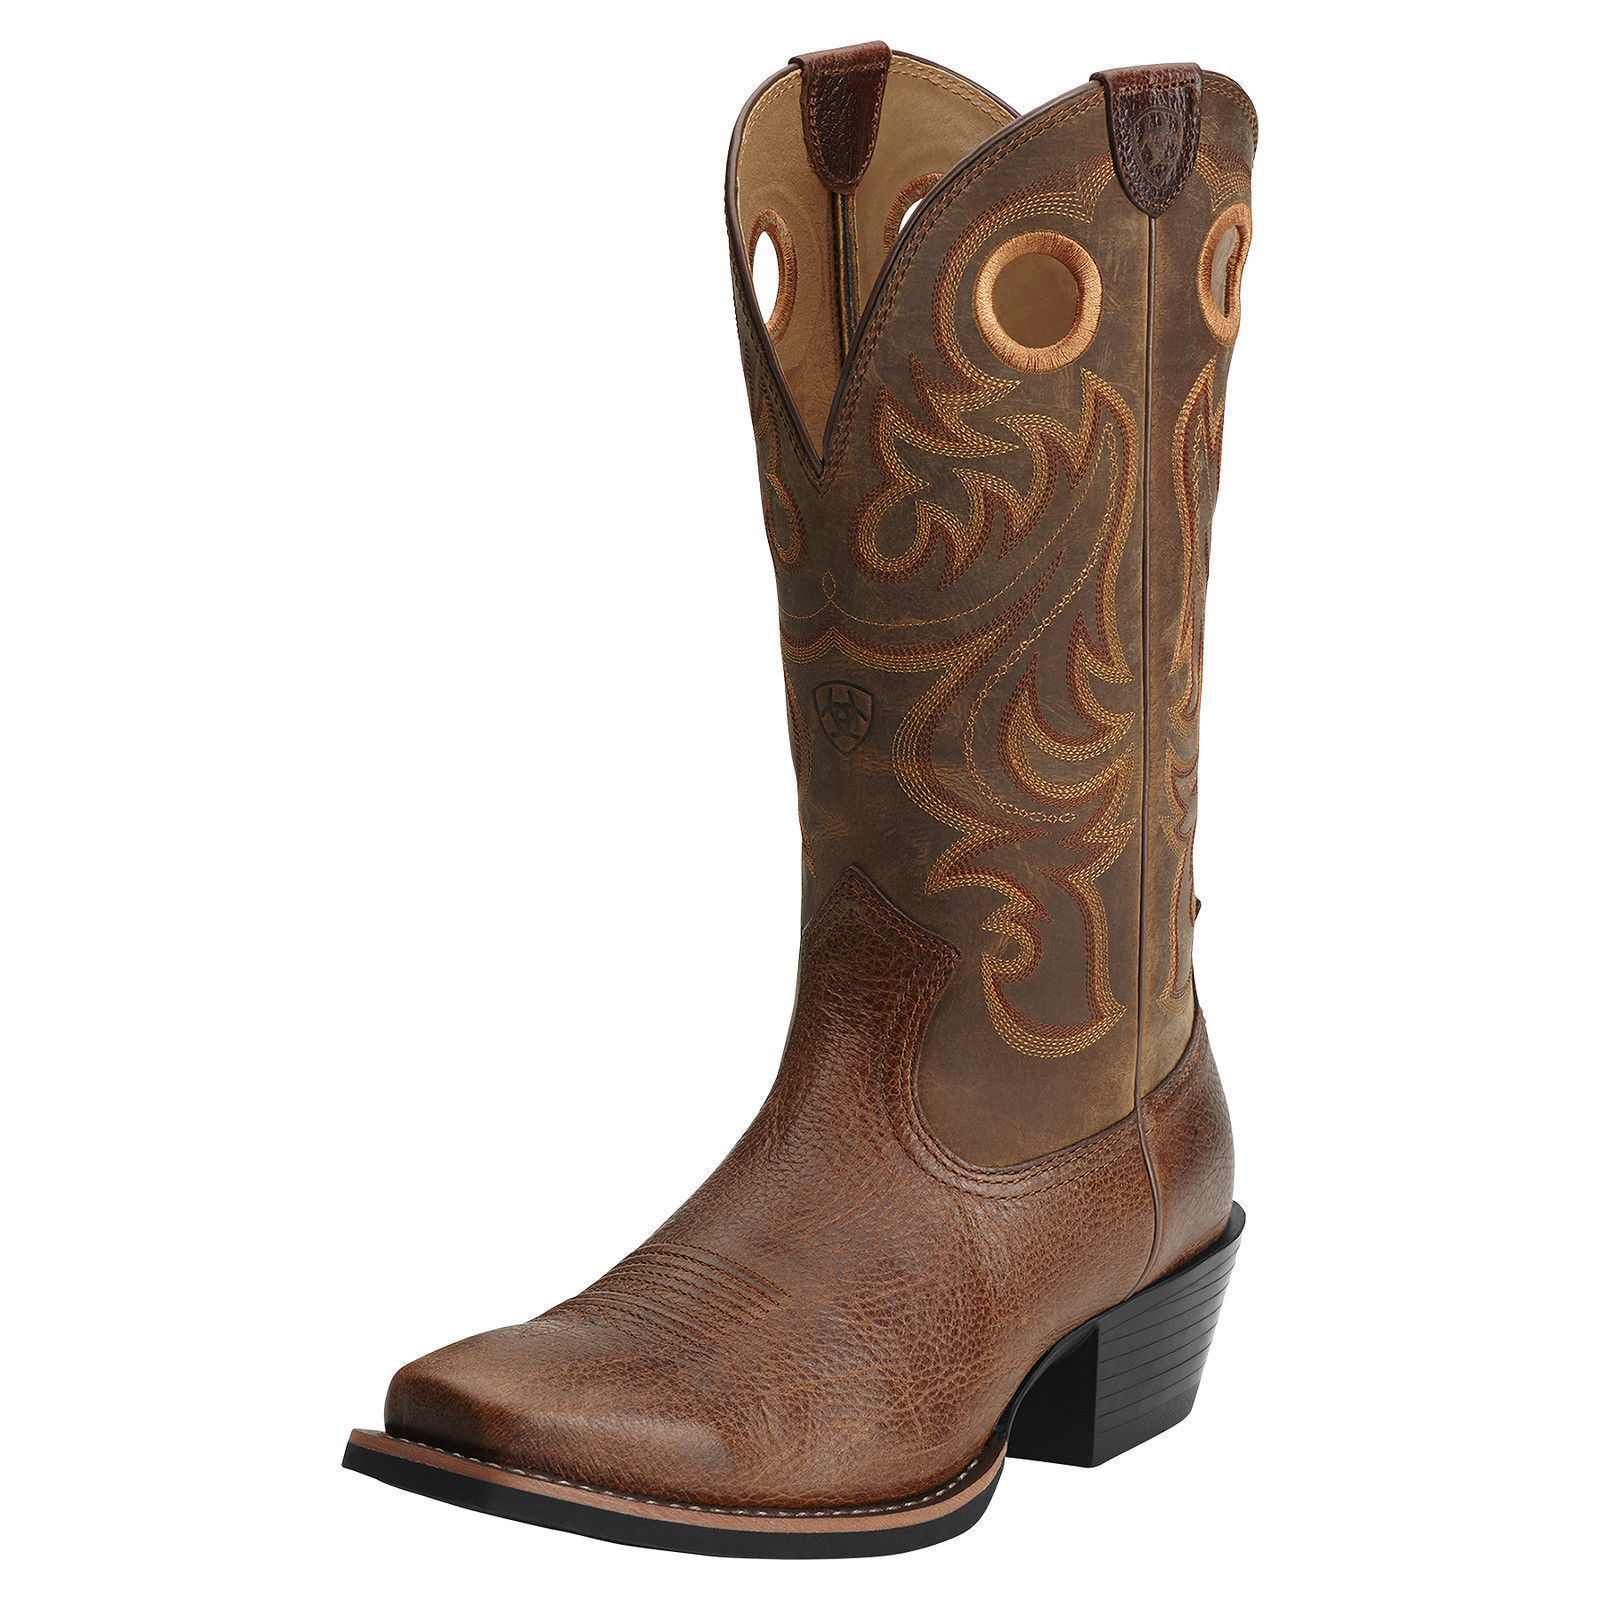 MEN'S ARIAT BROWN LEATHER SPORT COWBOY WESTERN BOOTS 1001402